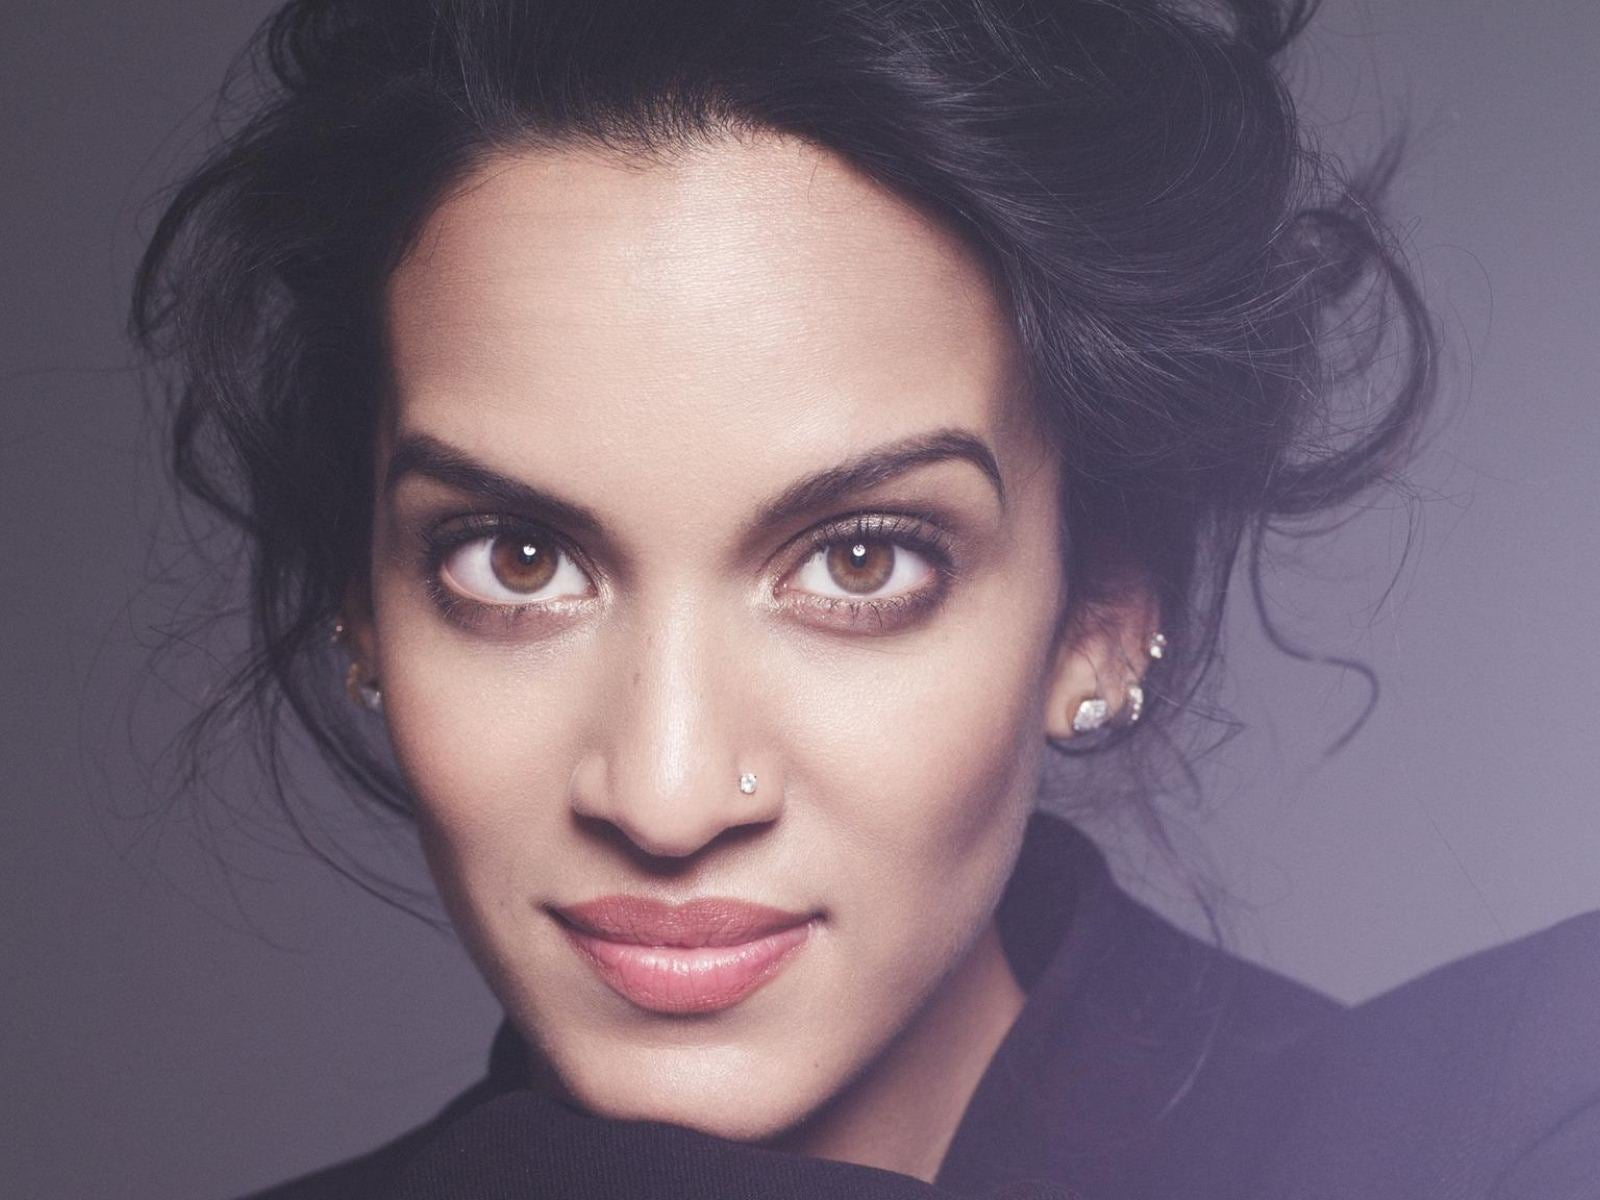 Main image for event titled Anoushka Shankar